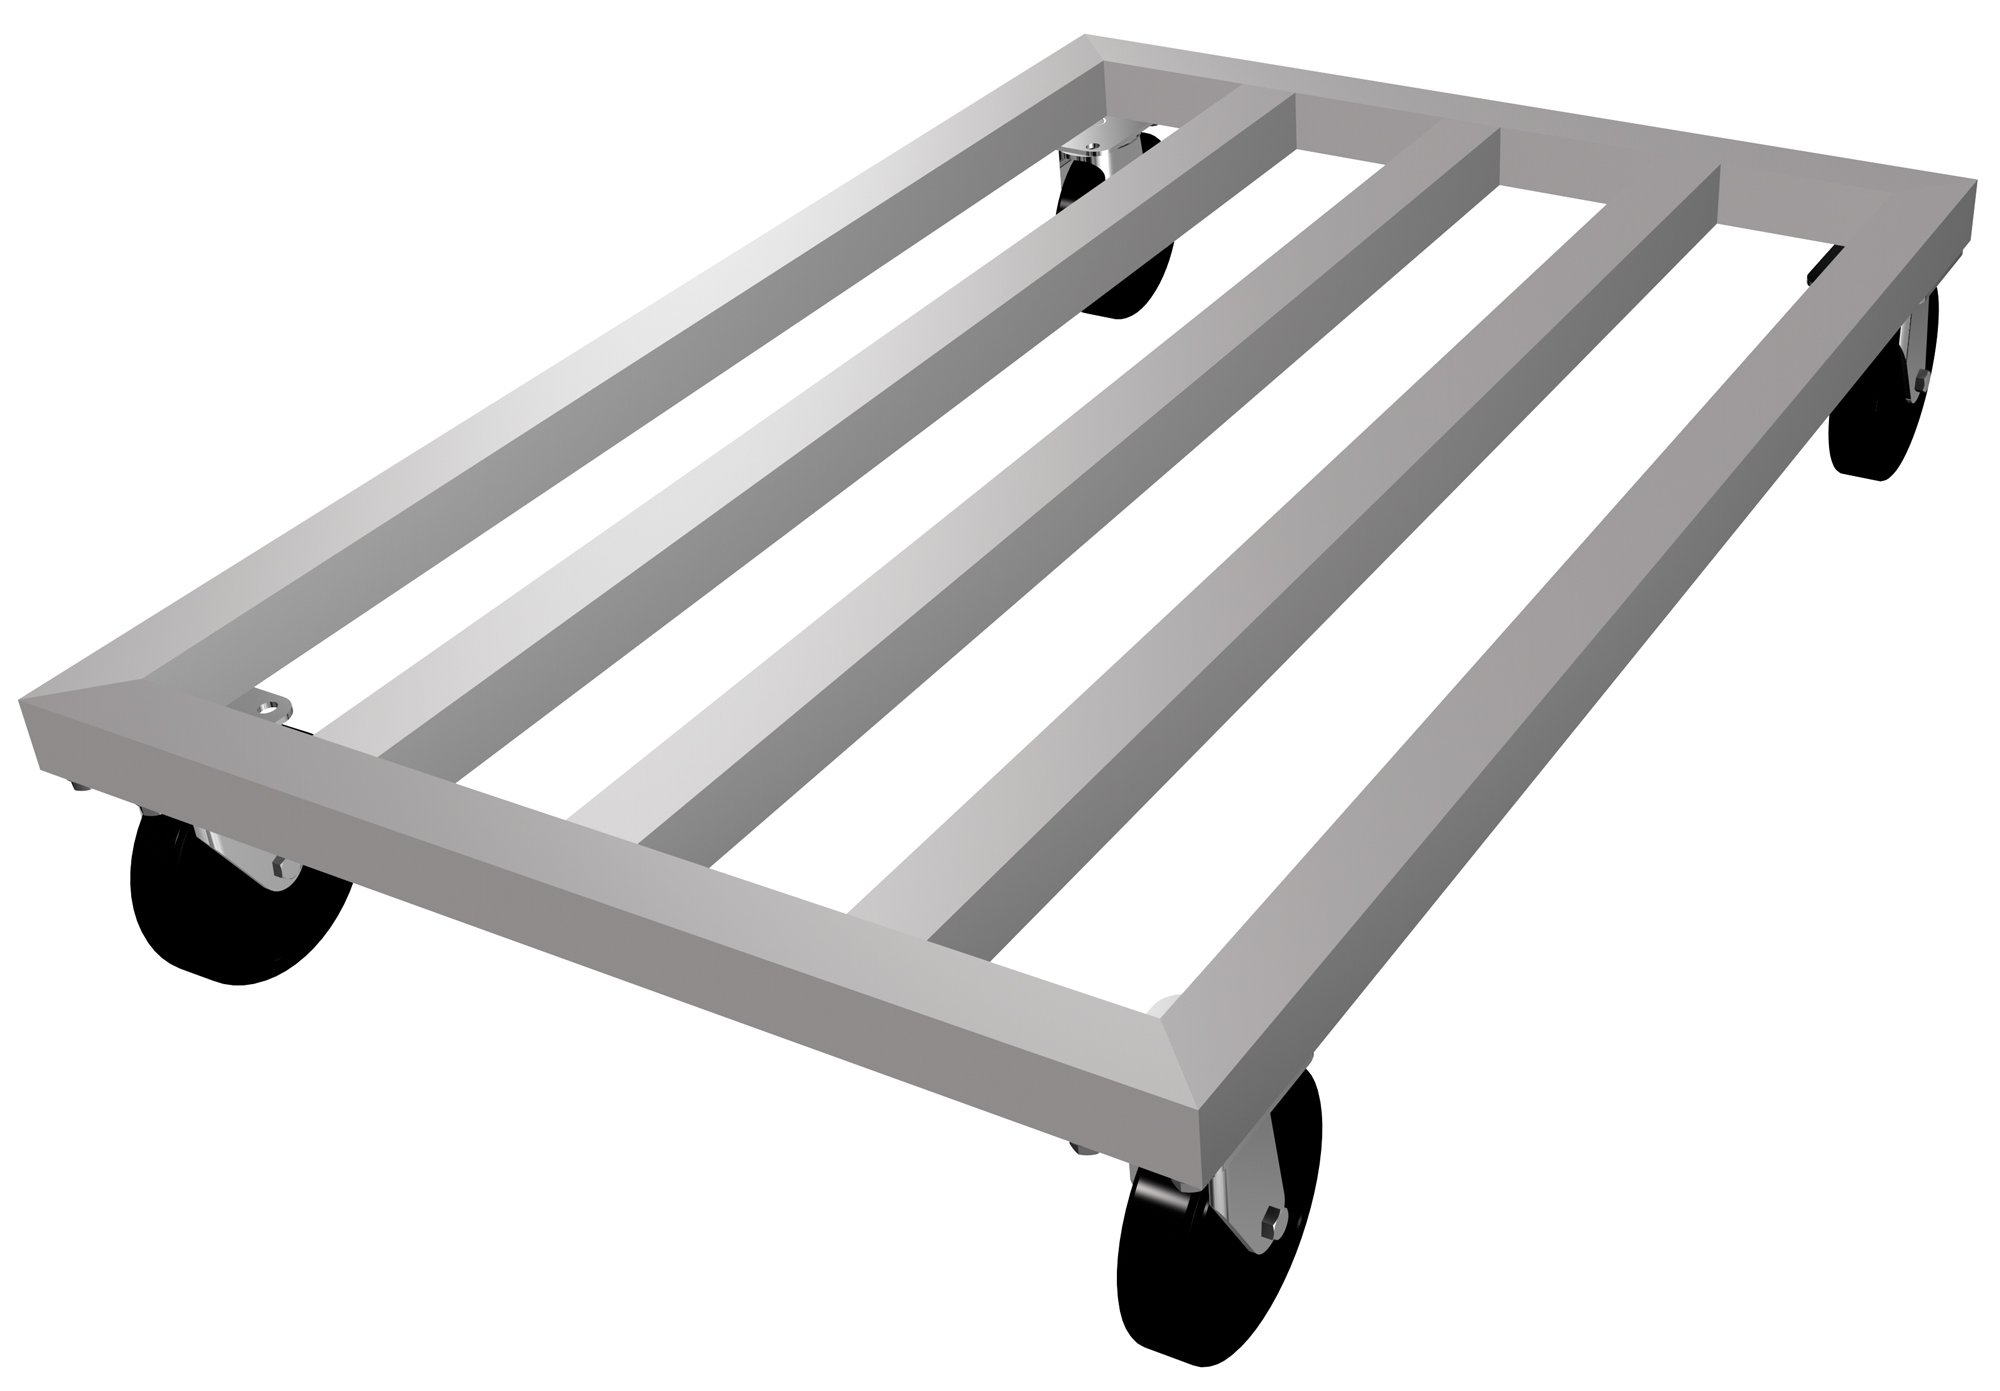 Lockwood MDR-2436-5 Aluminum Mobile Dunnage Rack with Swivel Casters, 1000 lbs Load Capacity, 36'' Length x 24'' Width x 8'' Height